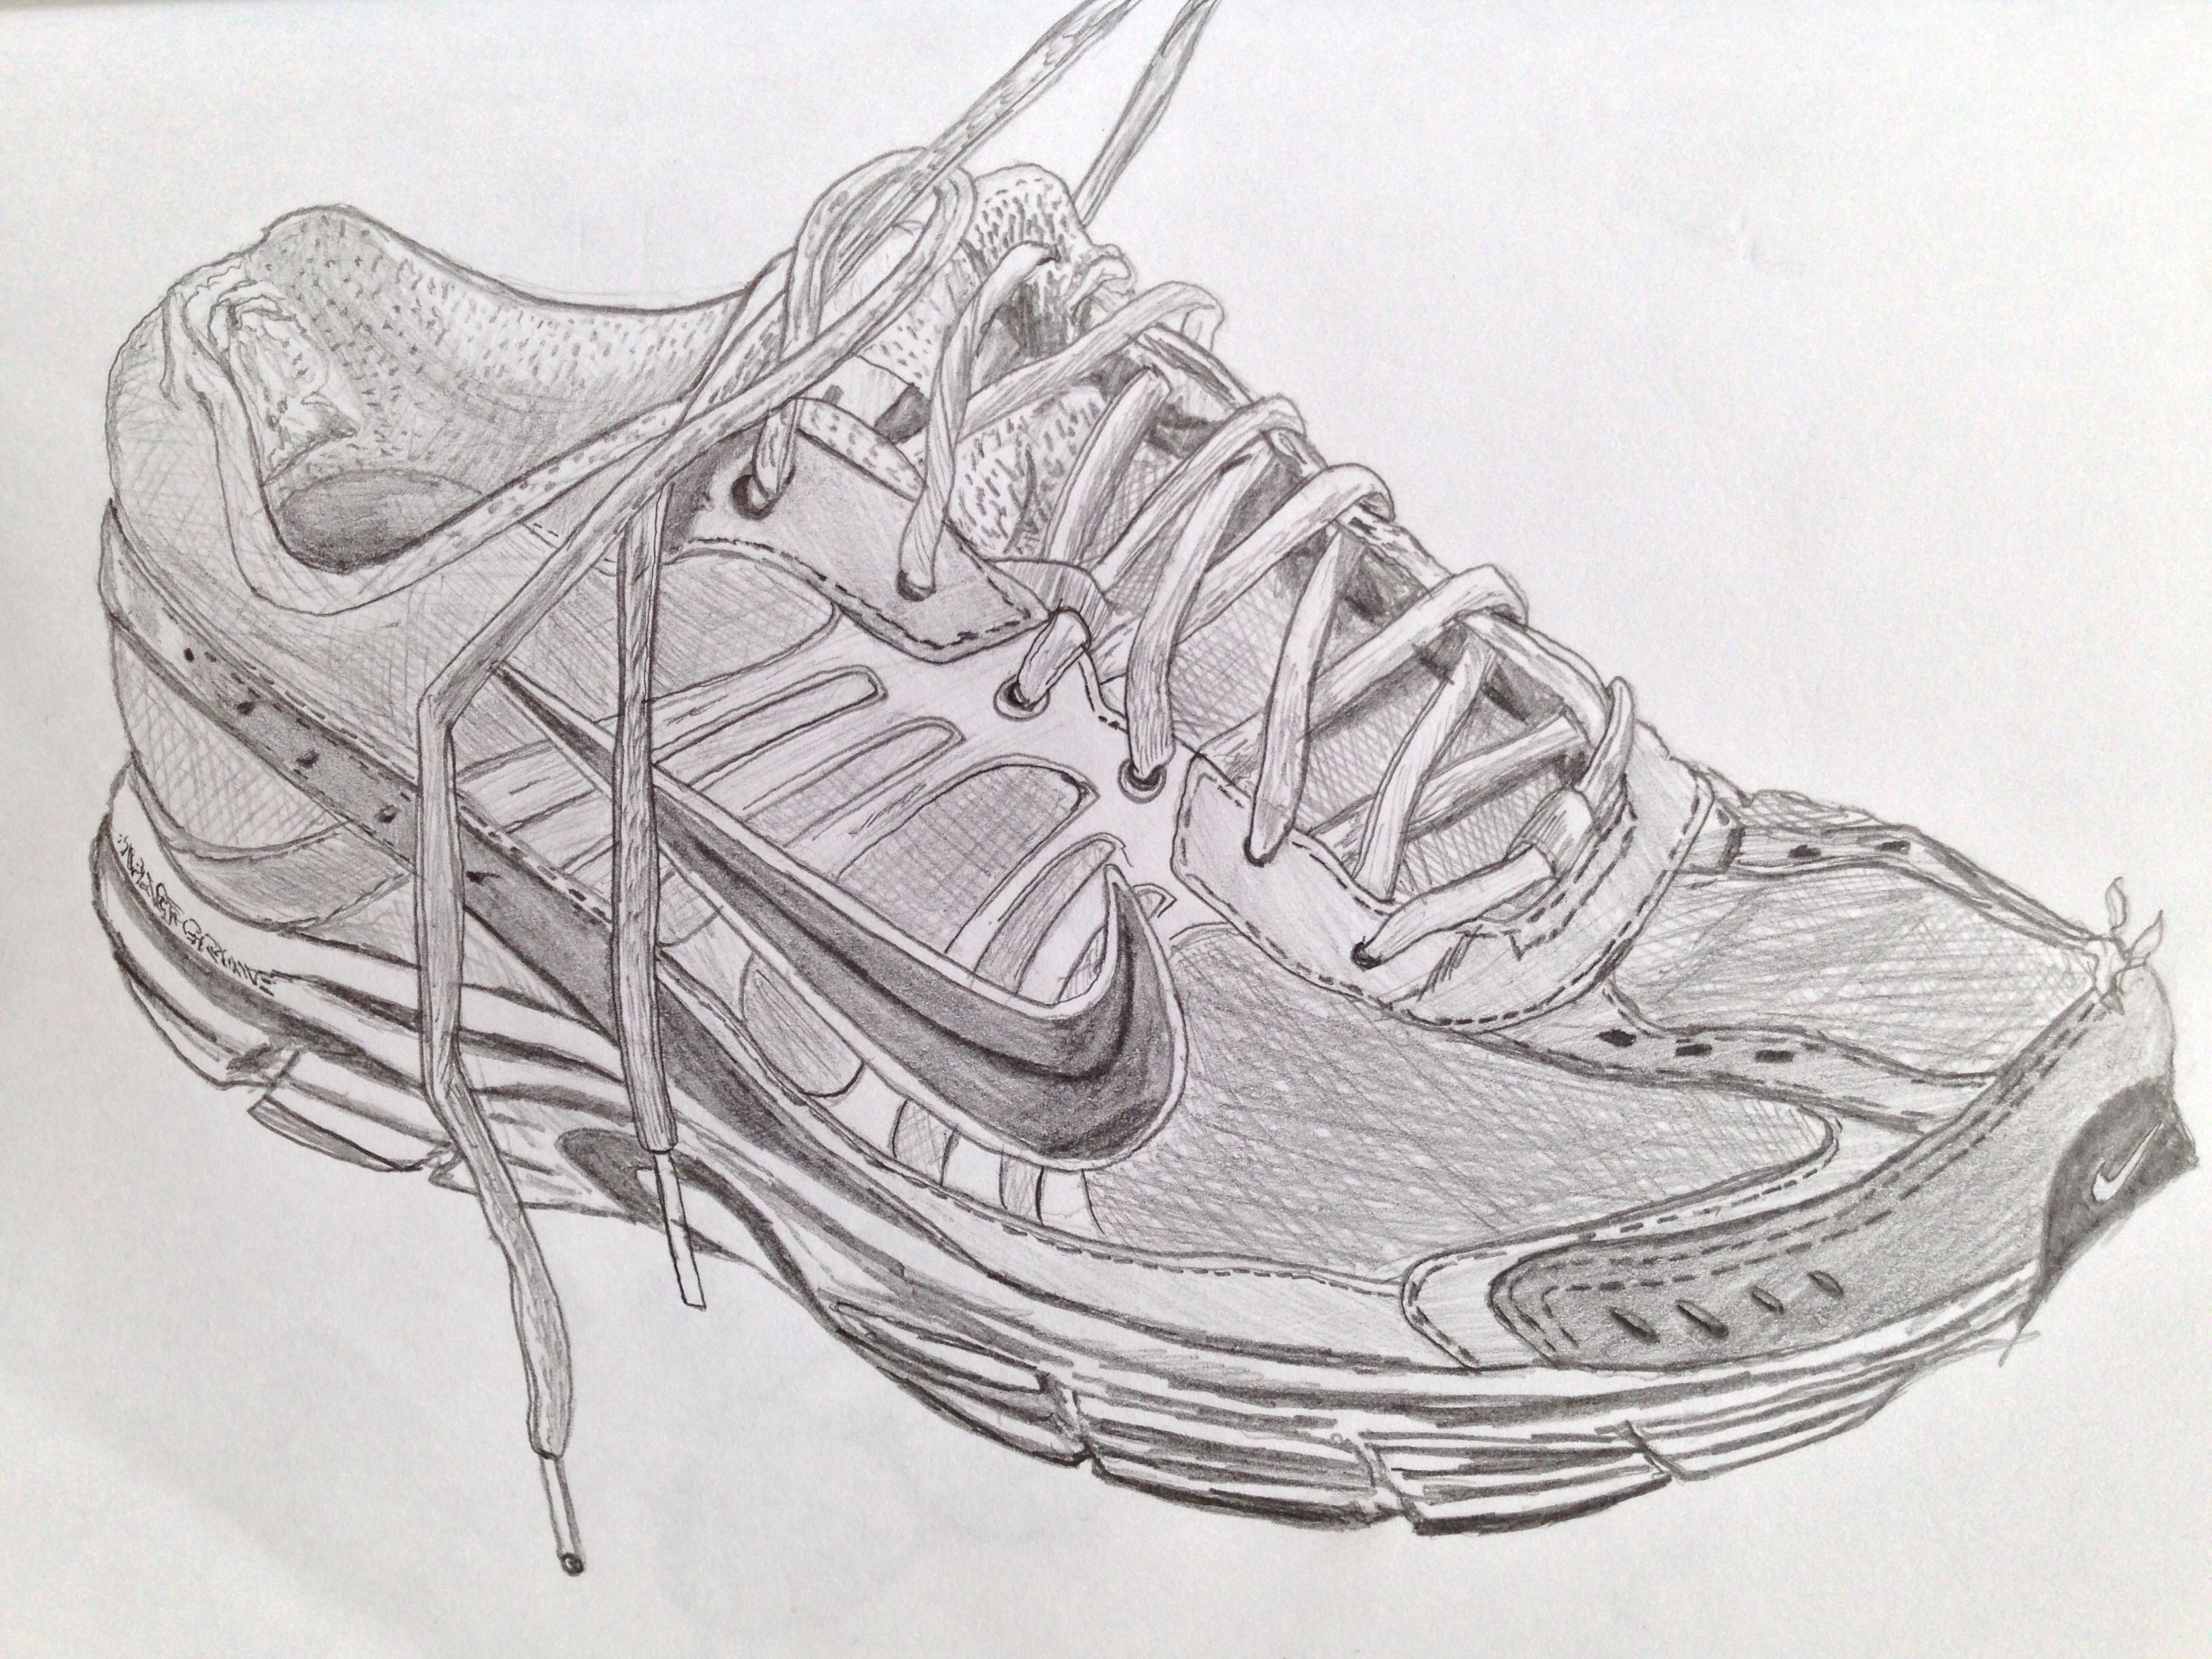 Trainer Sketch · SketchNikeObservational DrawingSearchingTrainersTennis  SneakersCroquisSketch DrawingSearch